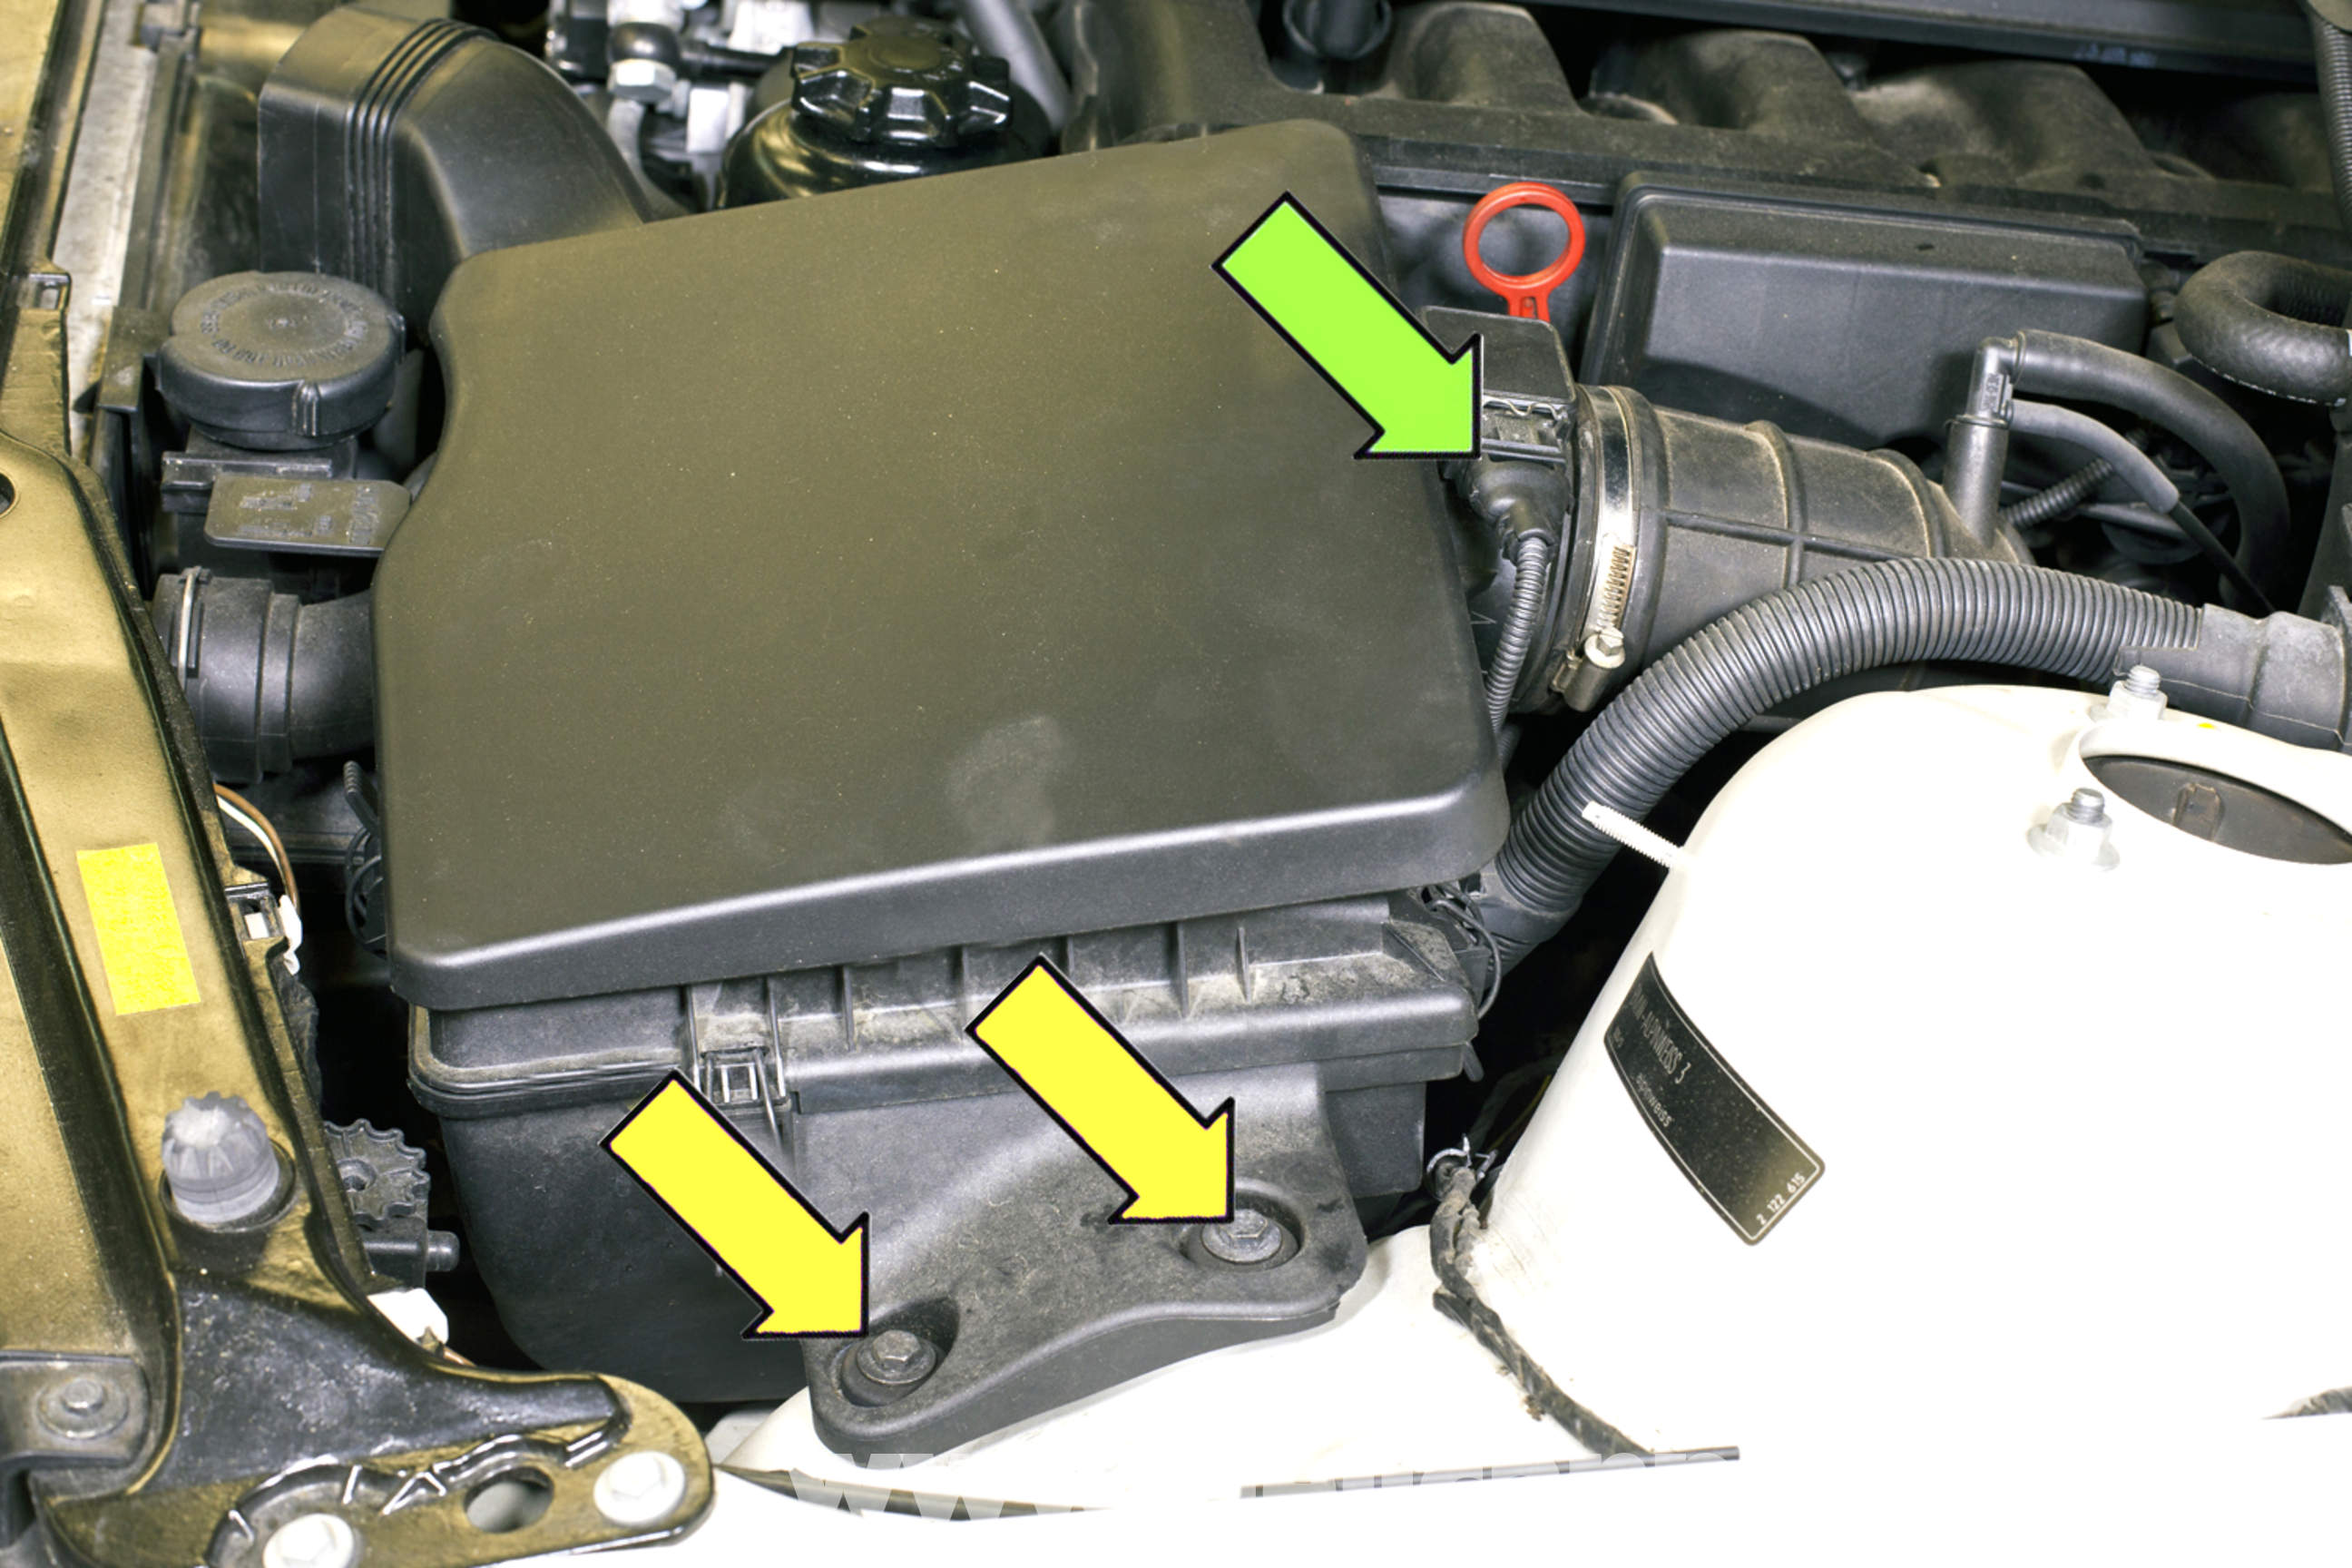 Bmw E46 Crankcase Breather Valve Replacement 325i 2001 2005 Wiring Harness Large Image Extra